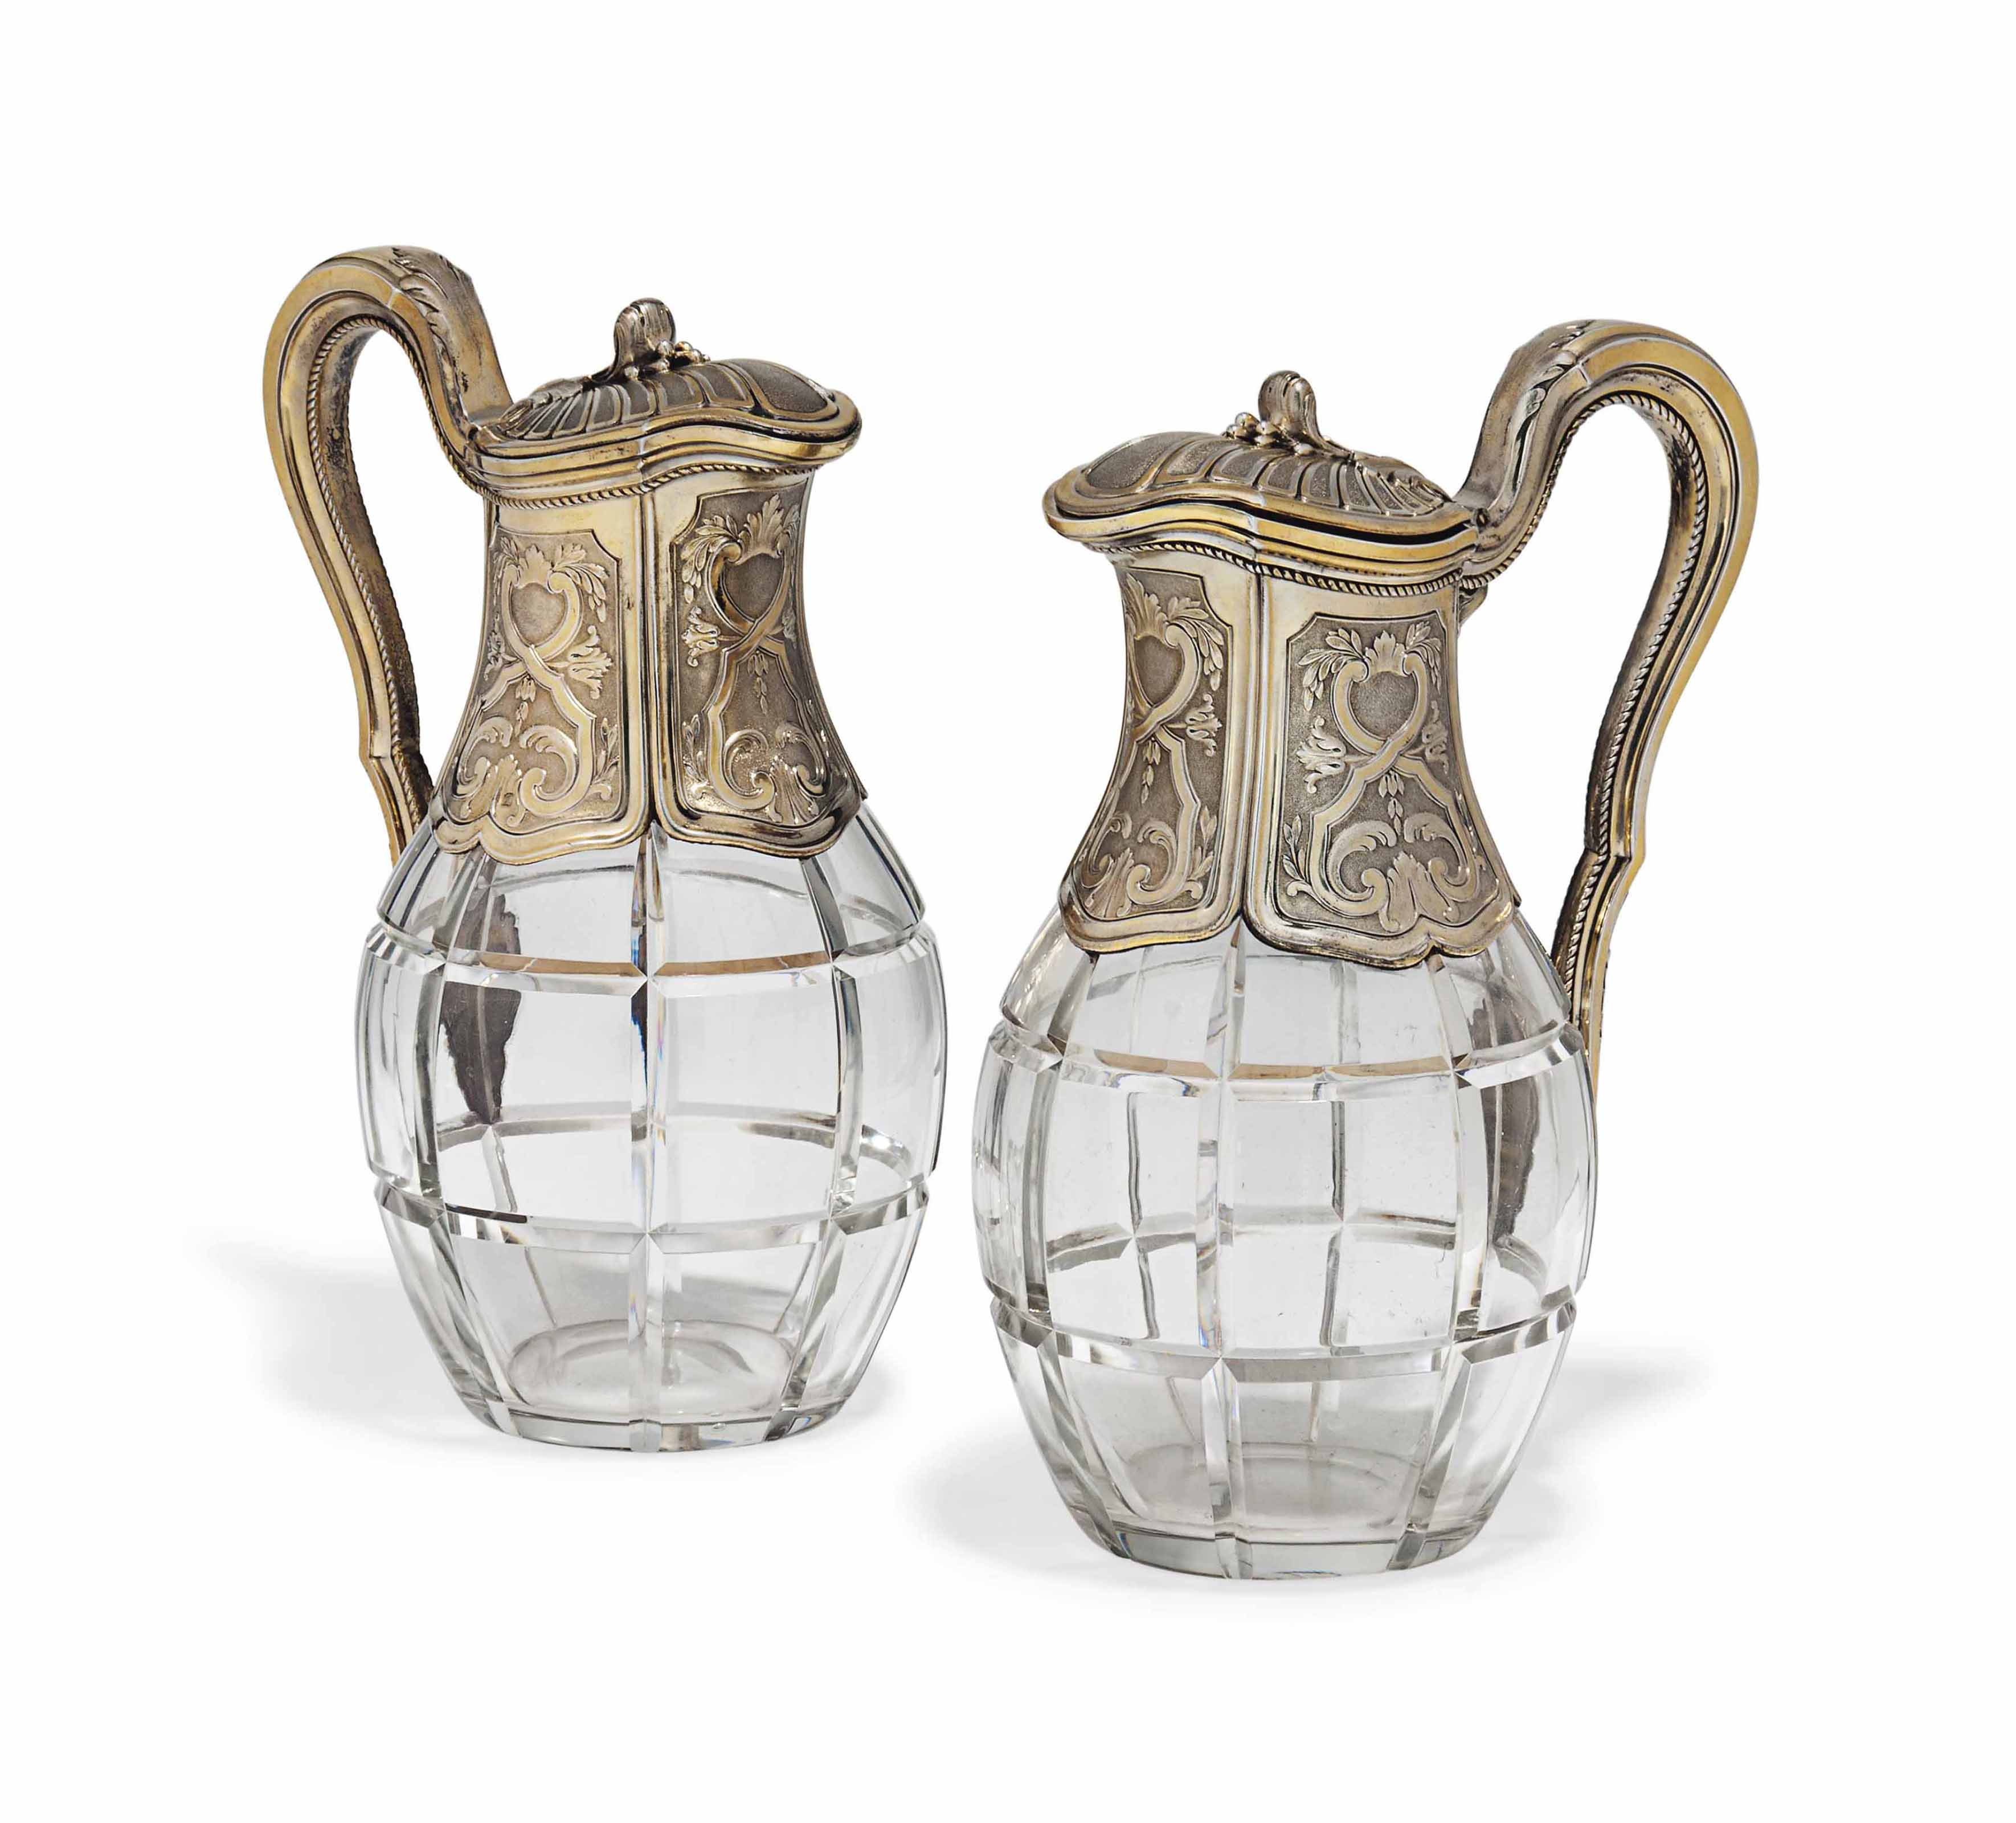 A PAIR OF FRENCH SILVER-GILT M